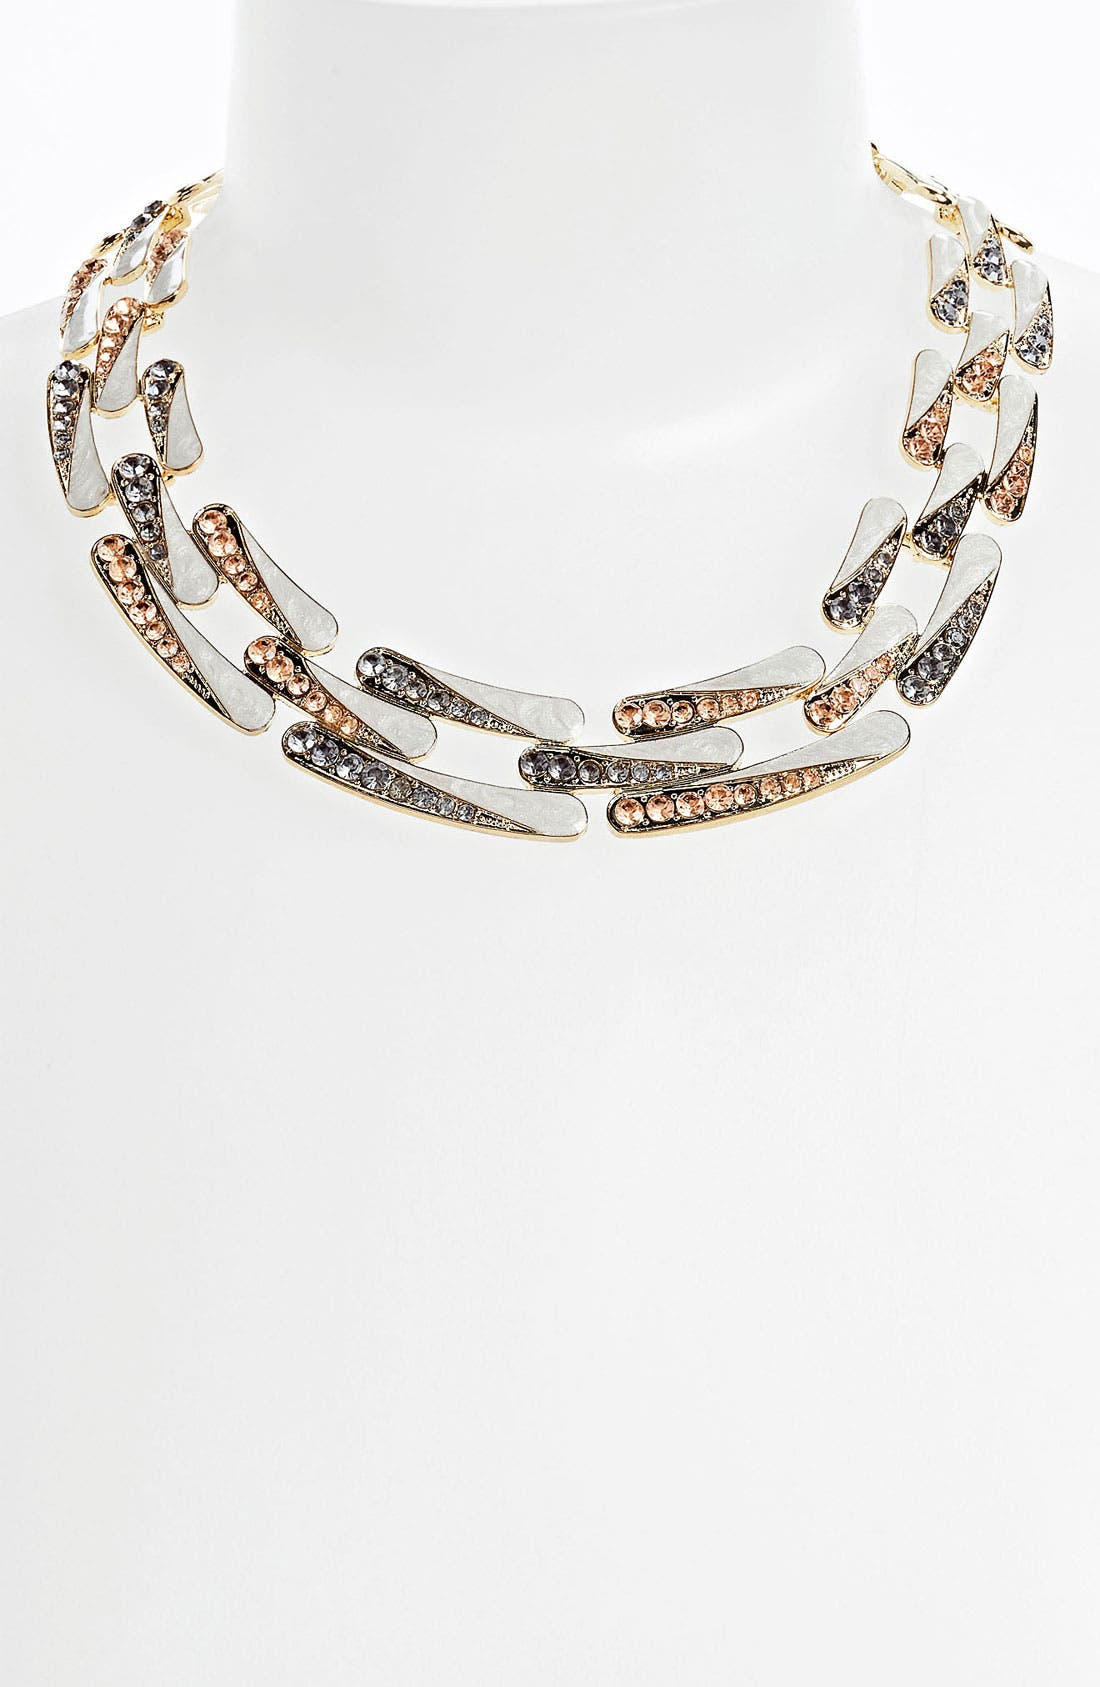 Alternate Image 1 Selected - Statements by DCK Rhinestone & Enamel Link Collar Necklace